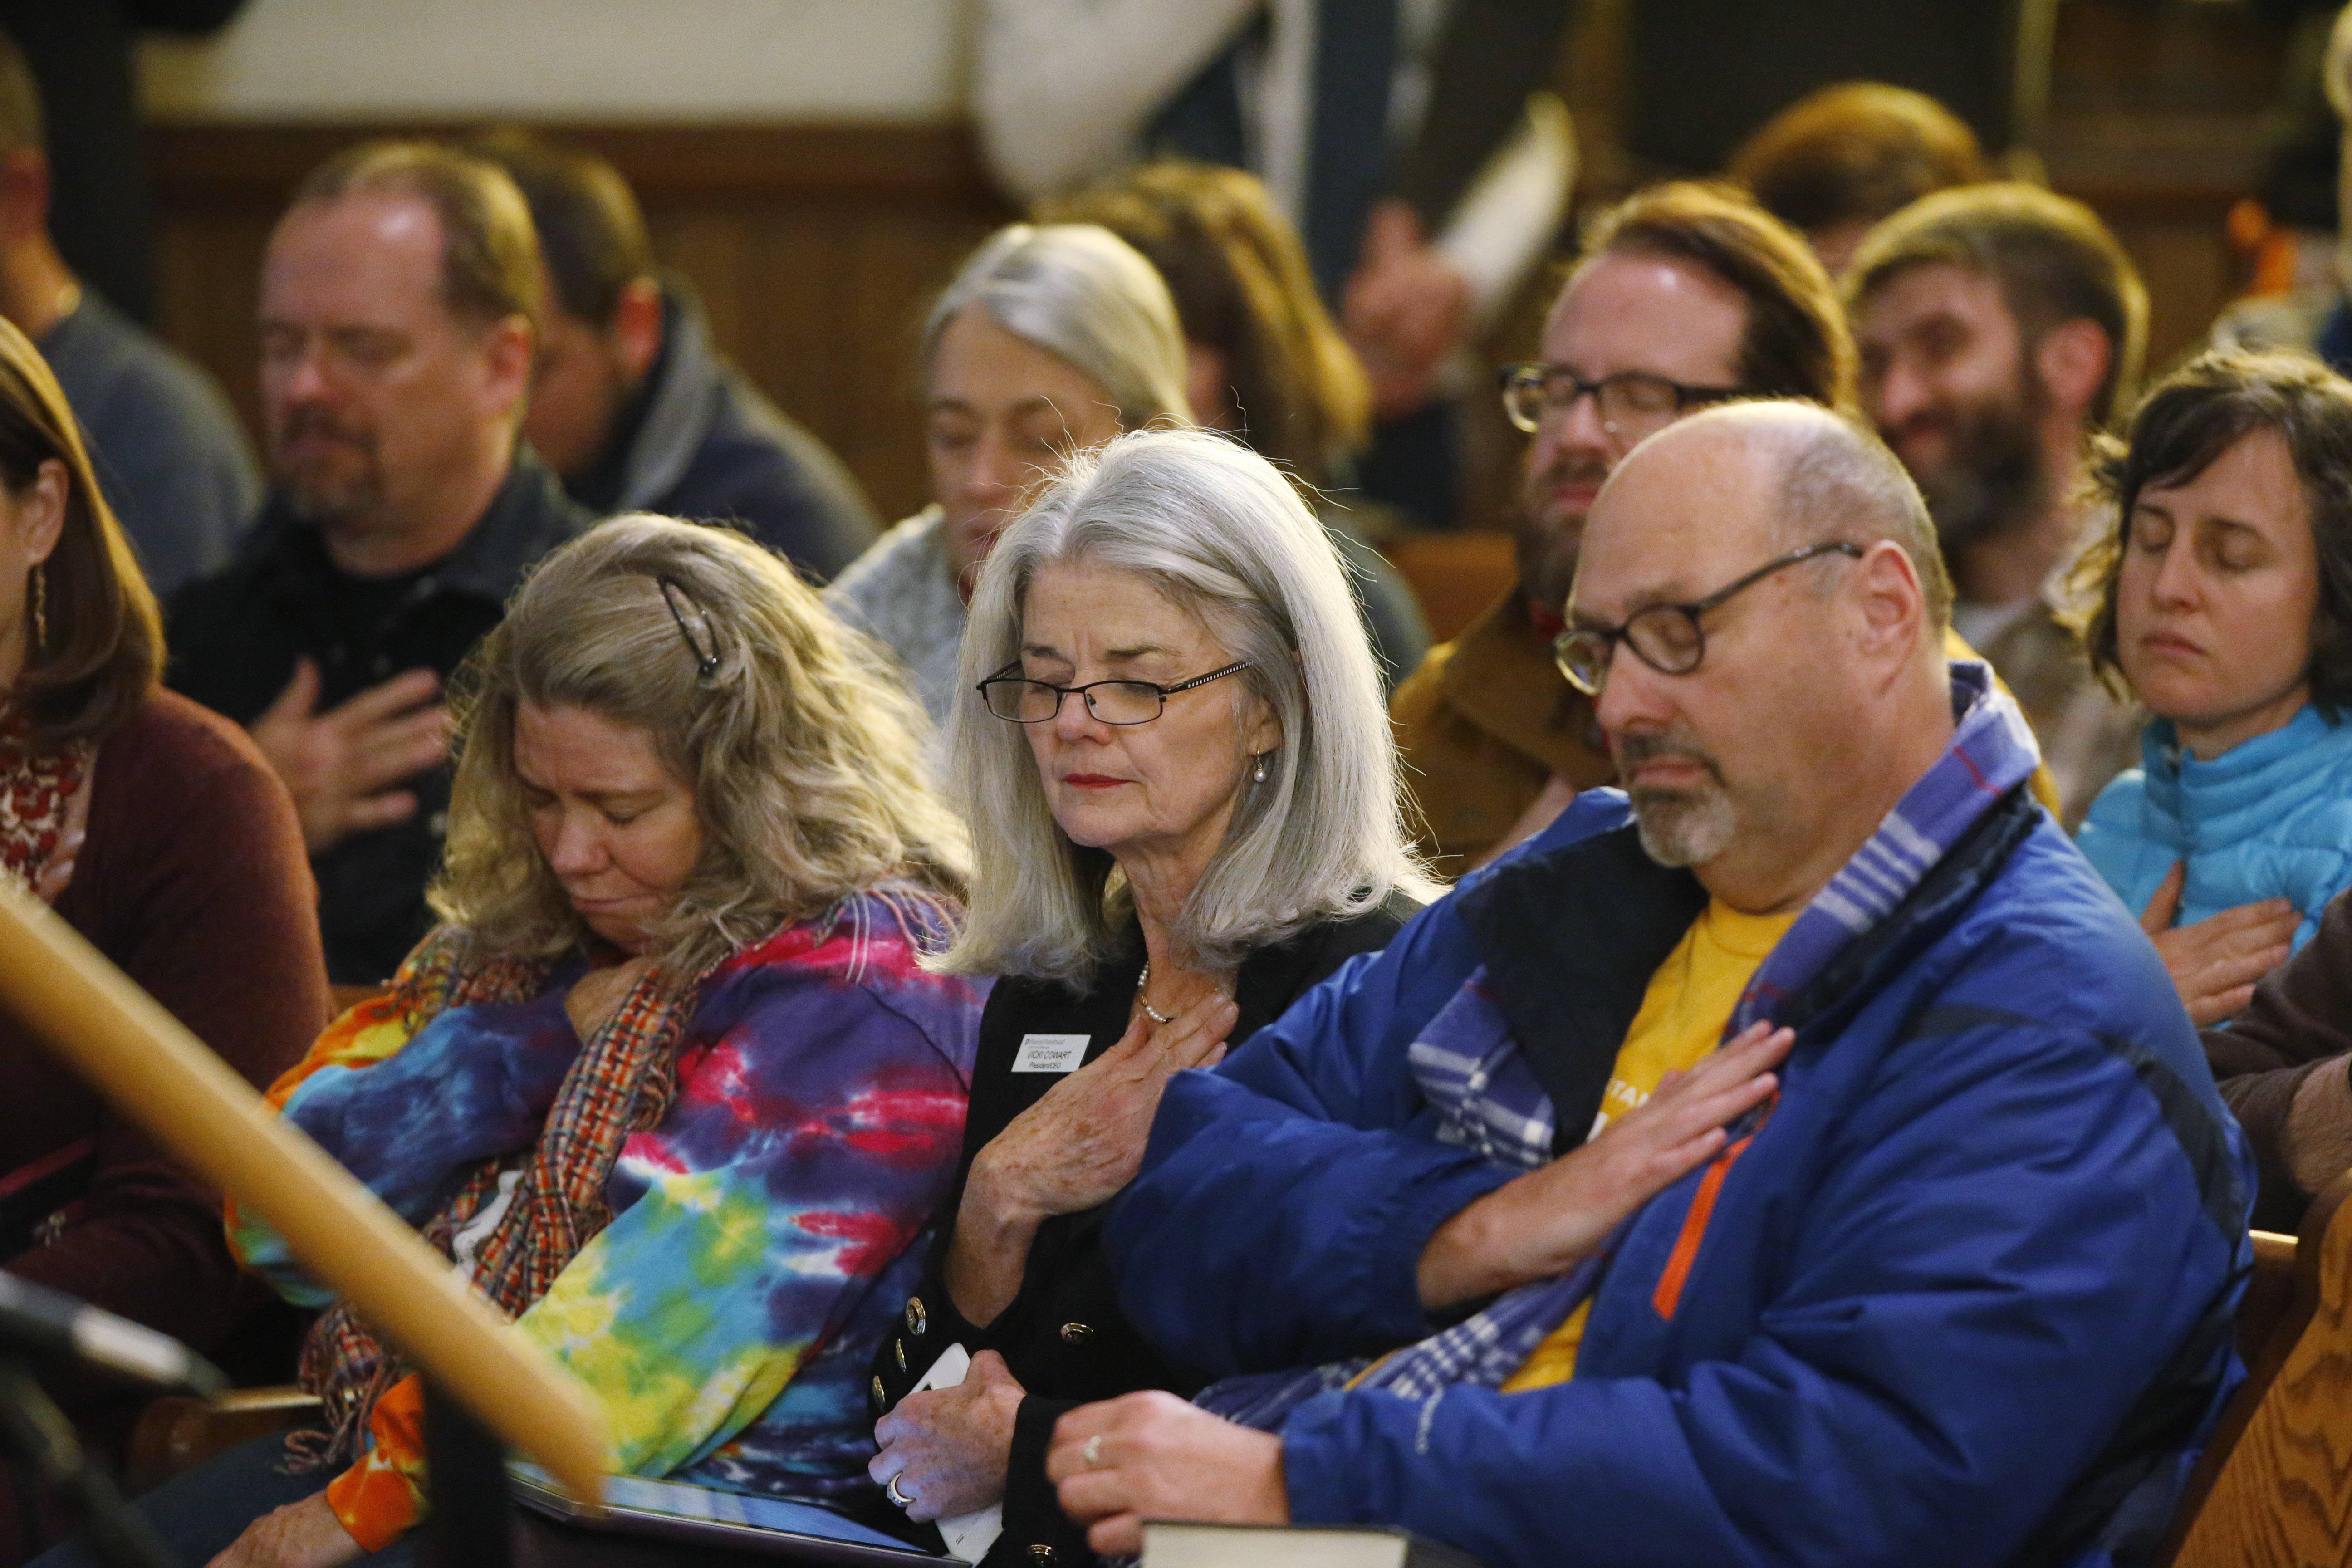 Vicki Cowart, center, executive director of Planned Parenthood of the Rocky Mountains, joins others in putting their hands on their hearts at All Souls Unitarian Universalist Church in Colorado Springs, Colo., during a vigil for victims of Friday's s...